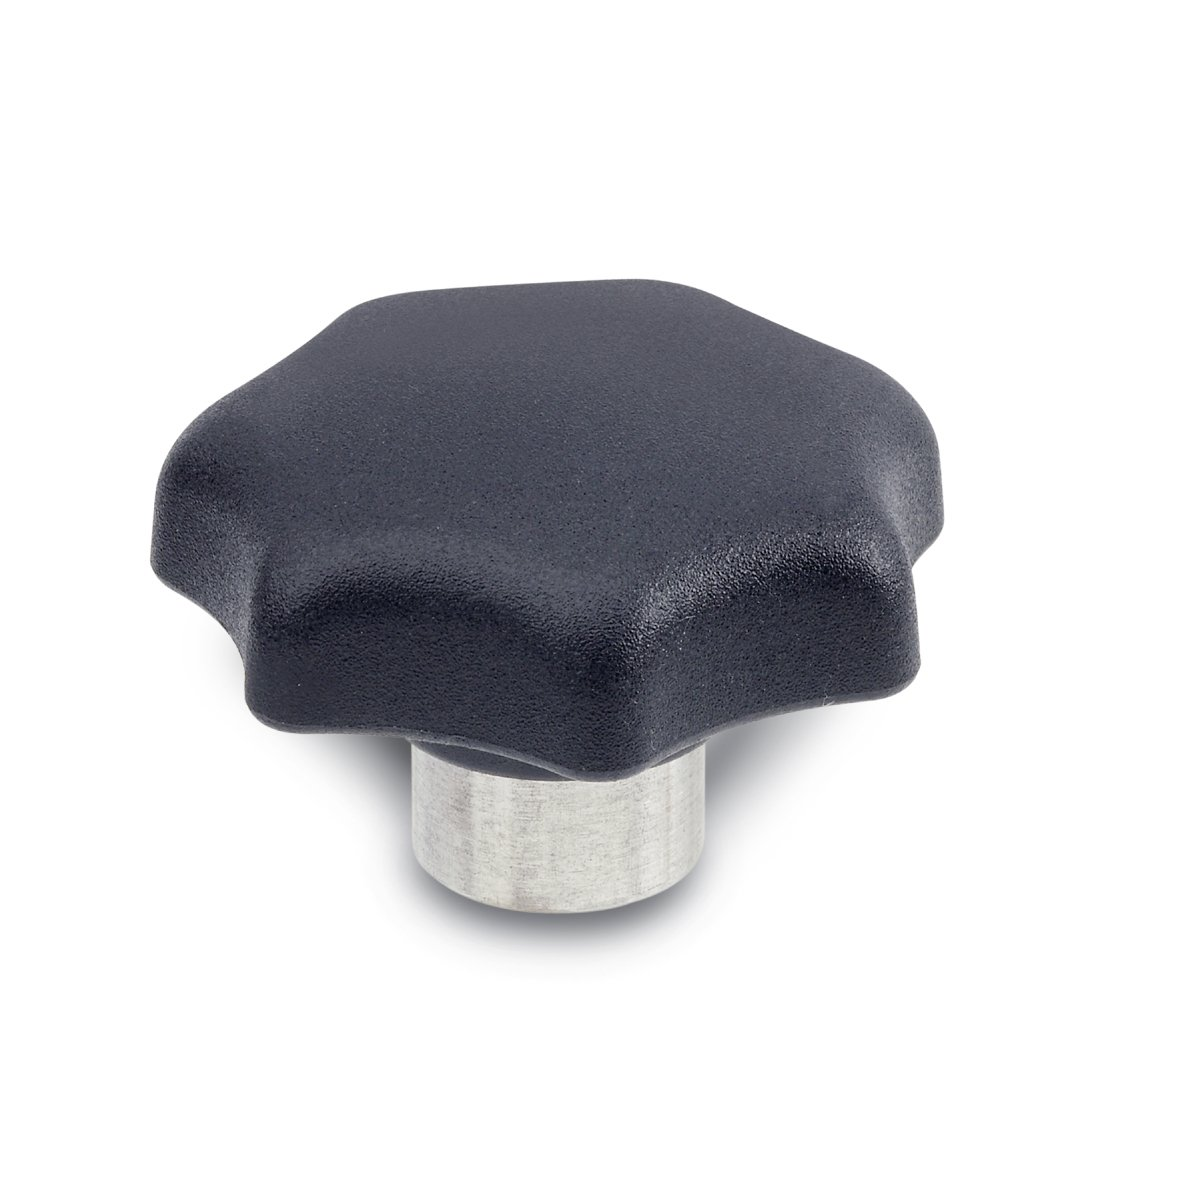 Pack of 1 63mm Head Diameter 12NX38//E M12 x 1.75 Thread Size x 20mm Thread Depth JW Winco Glass Filled Nylon Plastic Tapped Hand Knob with Stainless Steel Hub Threaded Hole